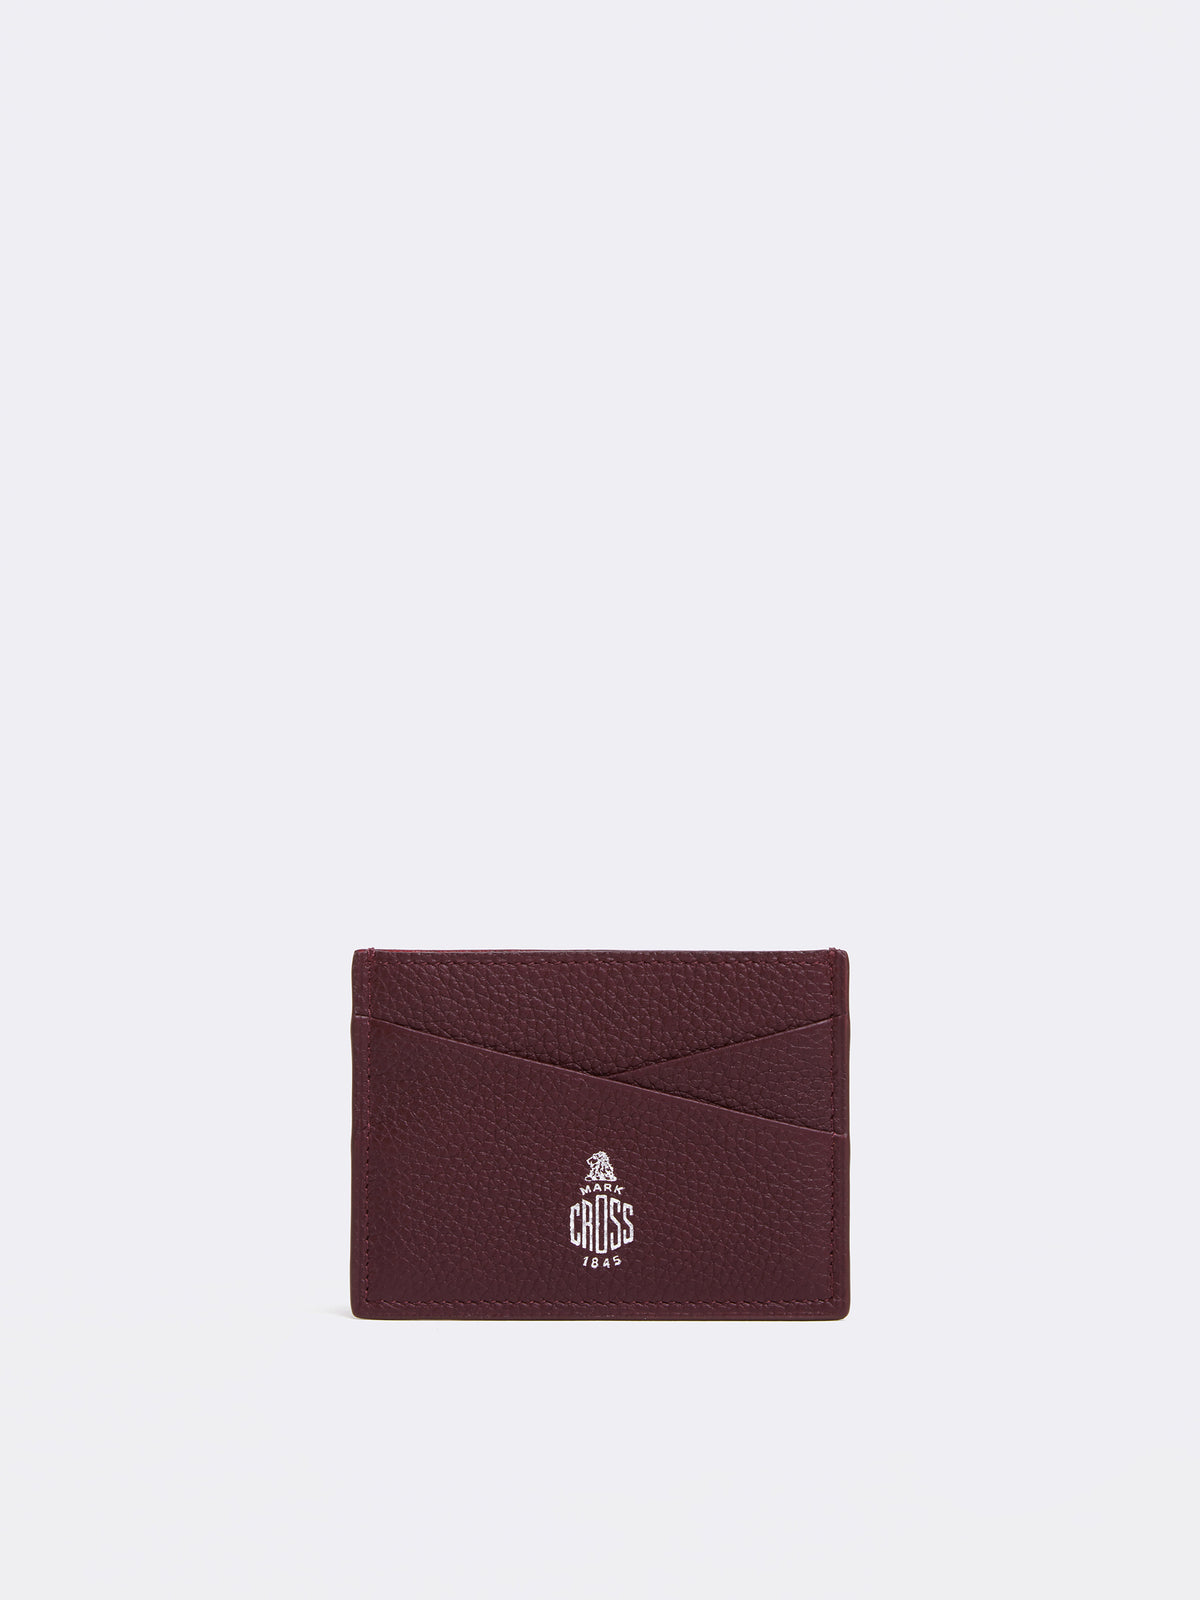 Mark Cross Leather Card Case Tumbled Grain Bordeaux Front